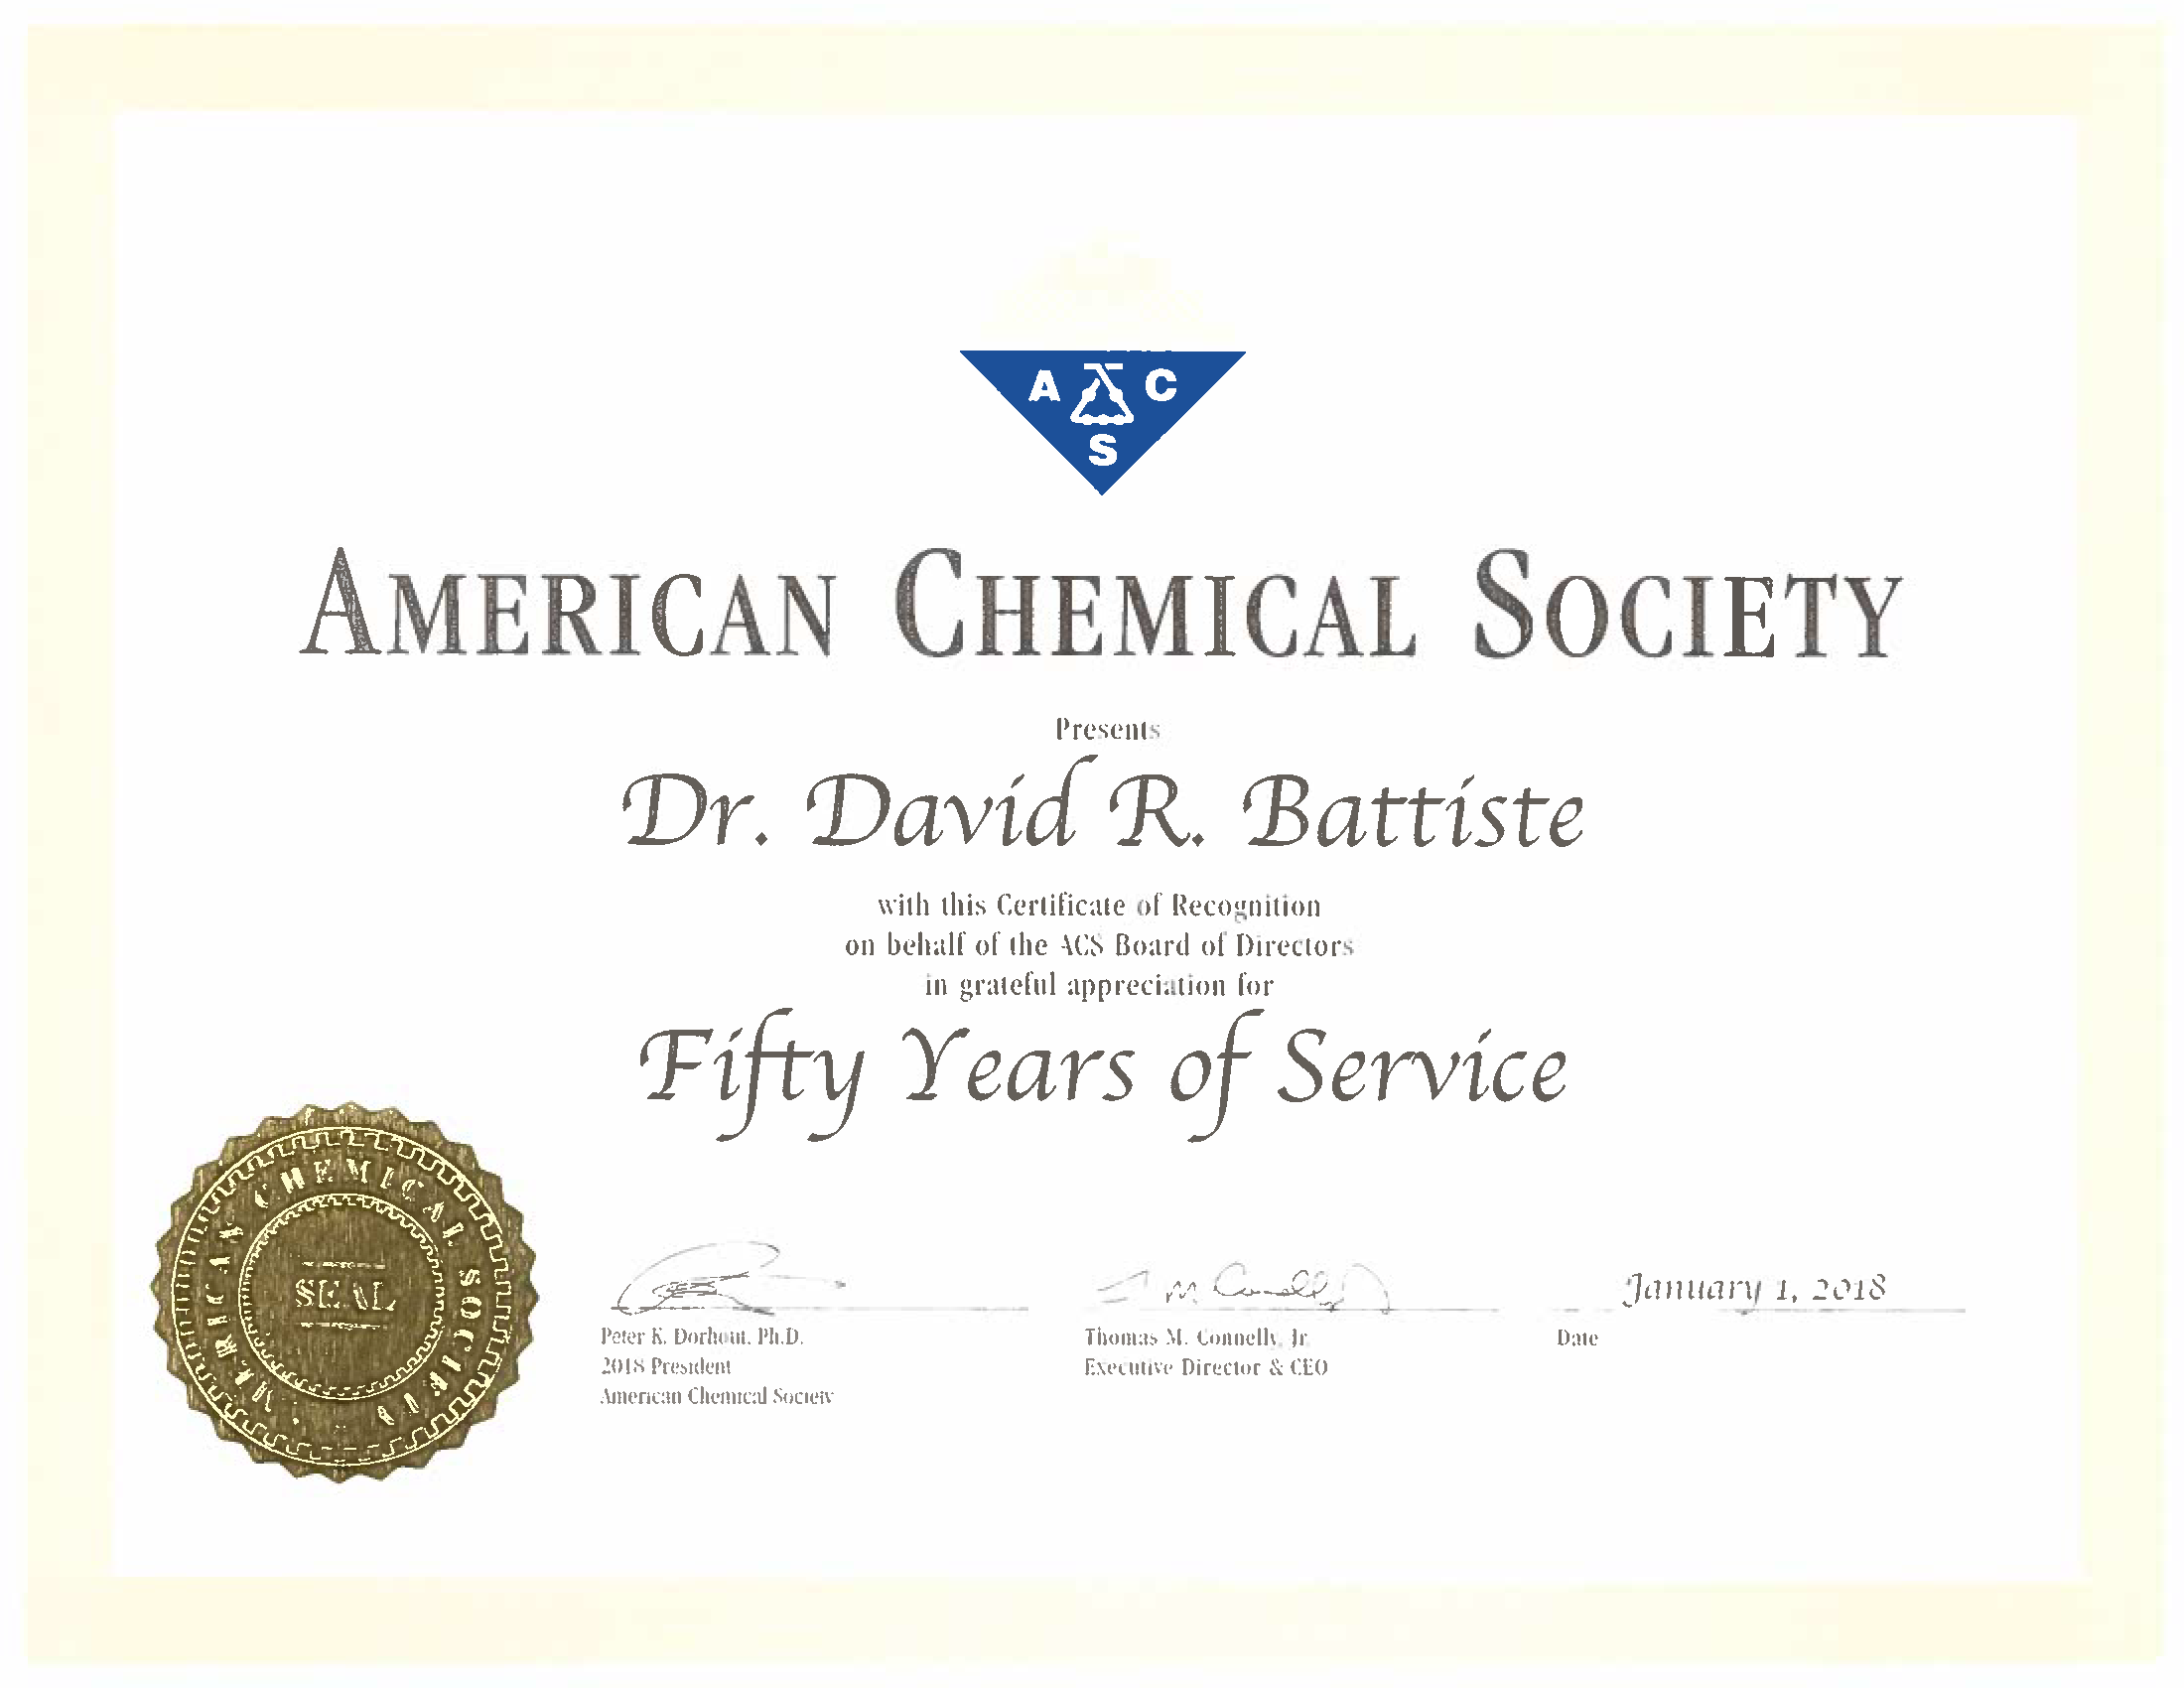 Dr. David Battiste 50 years of service recognition certificate from the ACS